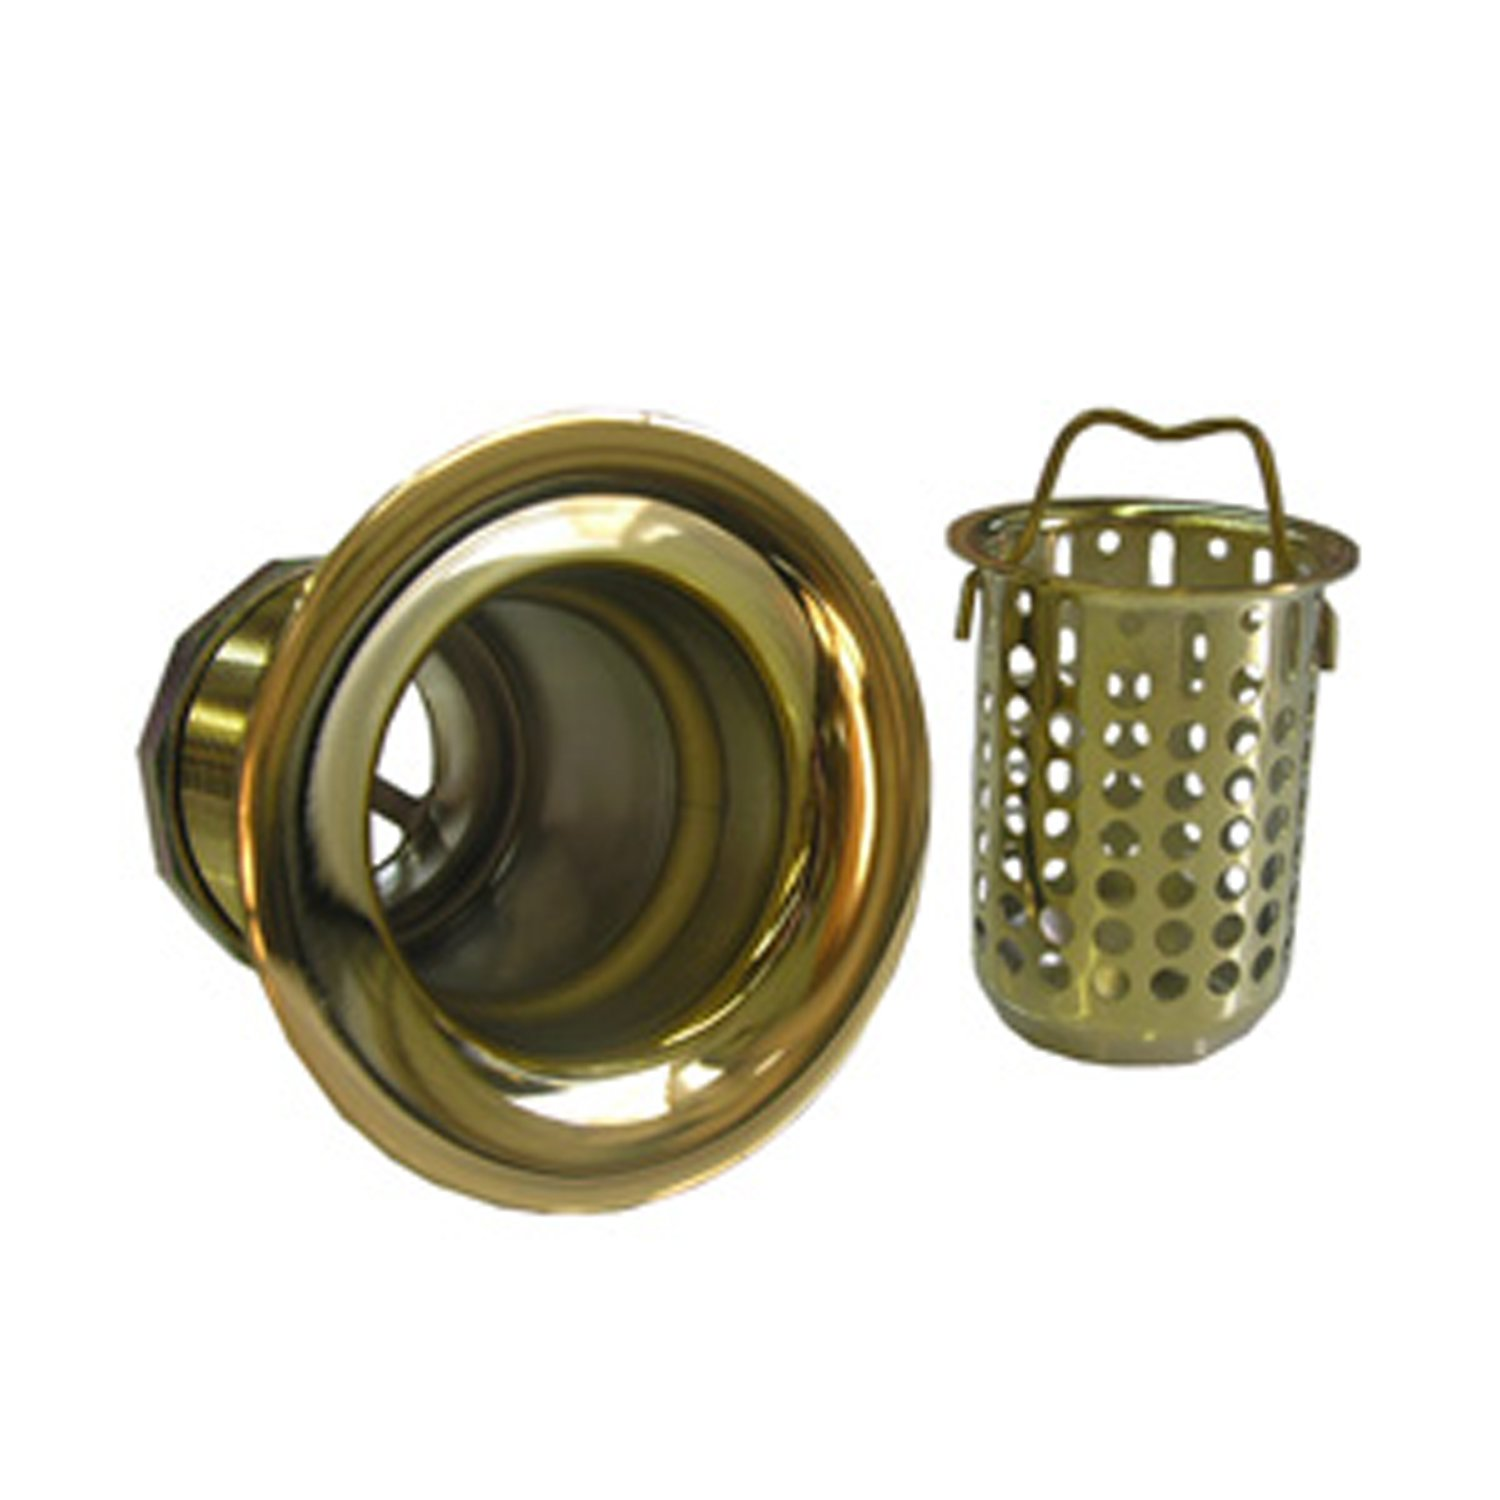 Polished Brass LASCO Simpatico 30083P Bar Sink Strainer Bail Basket Type 2-Inch Opening